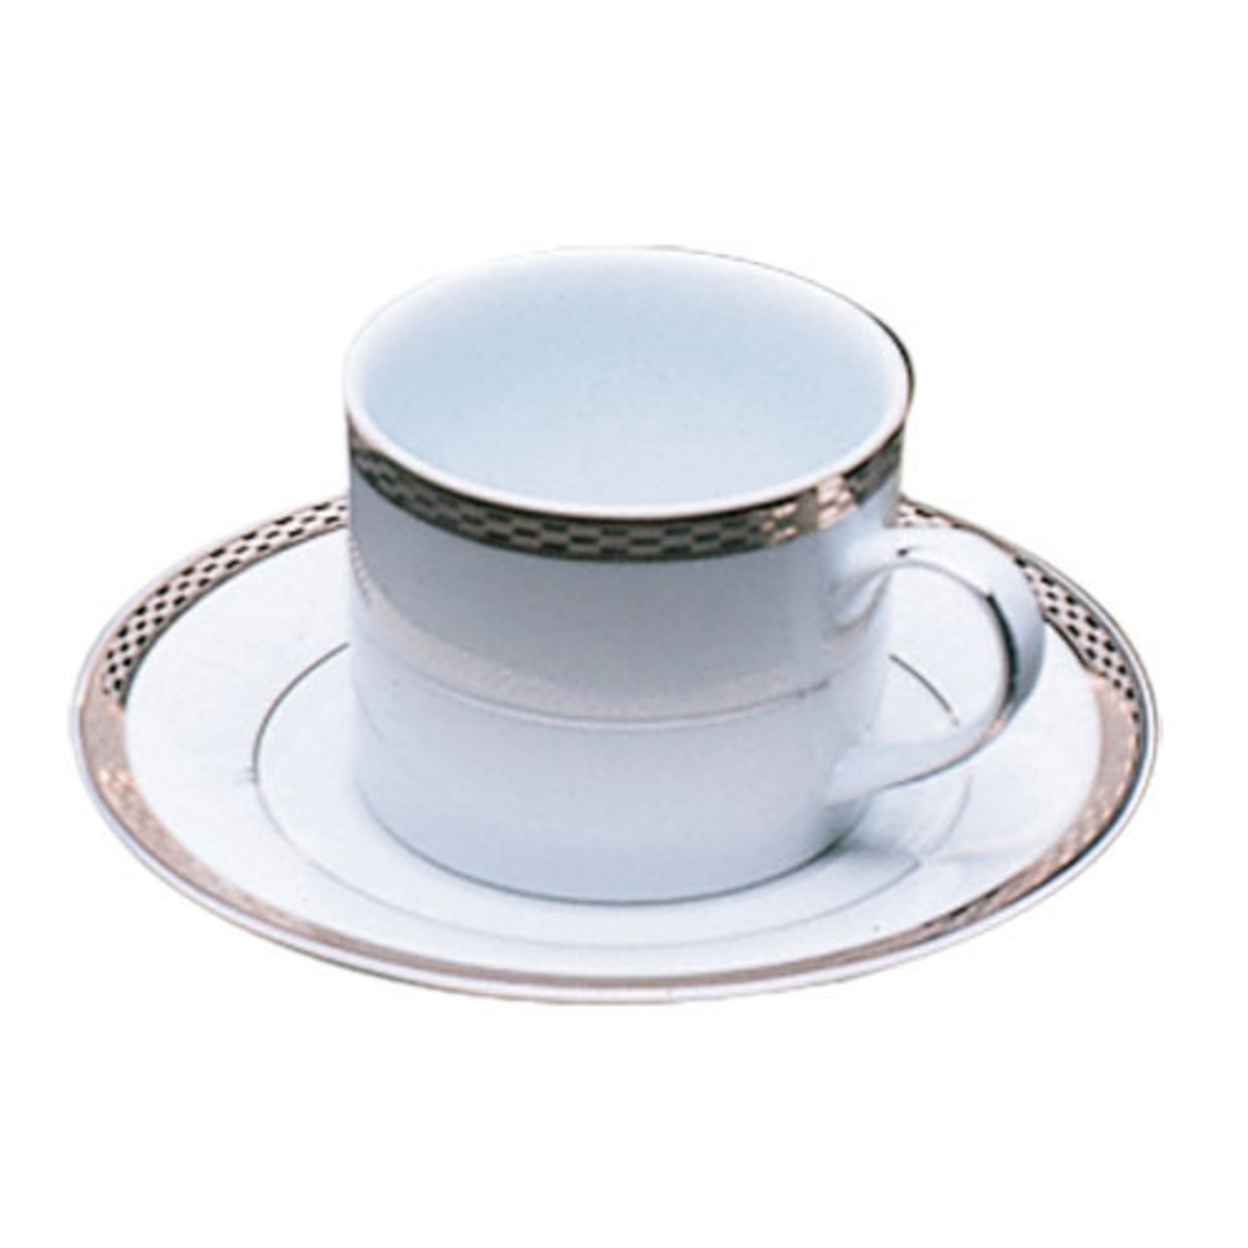 Ten Strawberry Street Athens Platinum Cup-Saucer- Set of 6 59f22961e224614988714e1c